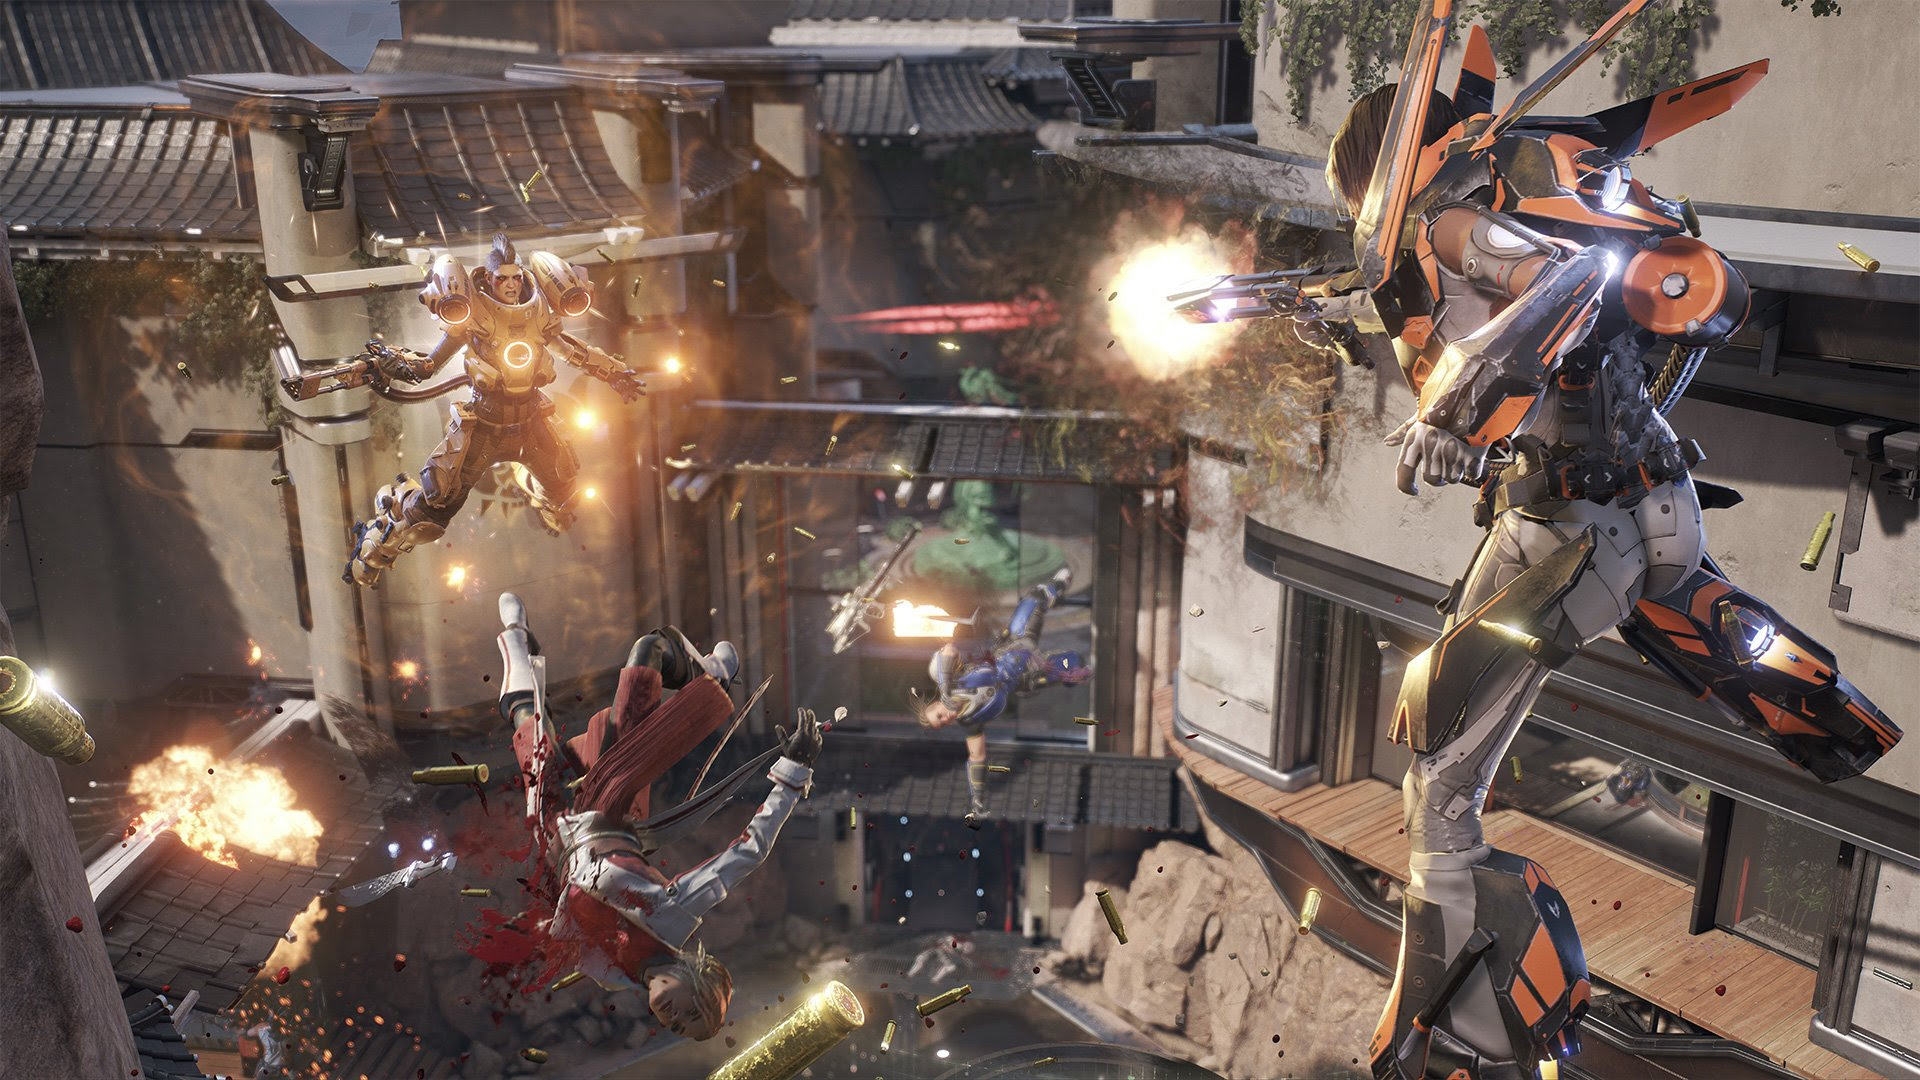 You should check out the LawBreakers open beta this weekend screenshot